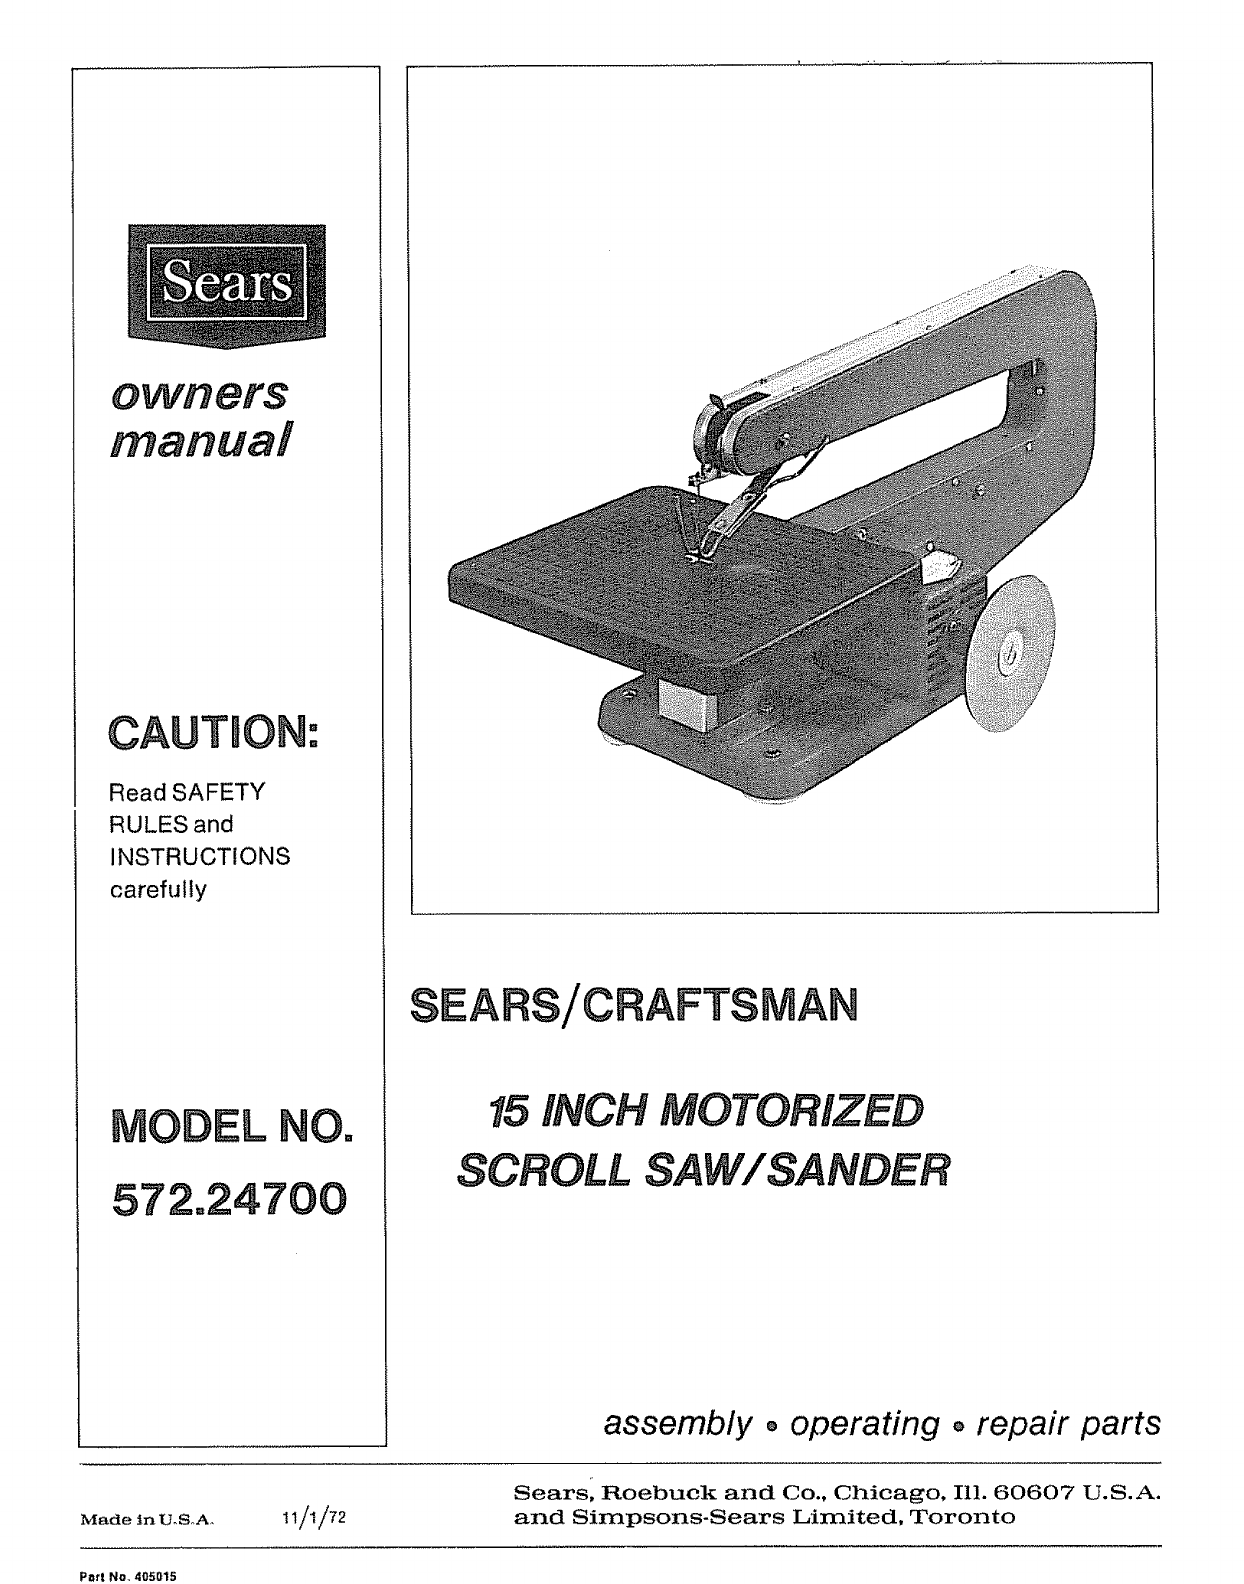 craftsman saw 572 24700 user guide manualsonline com rh office manualsonline com craftsman miter saw owner's manual craftsman miter saw user manual